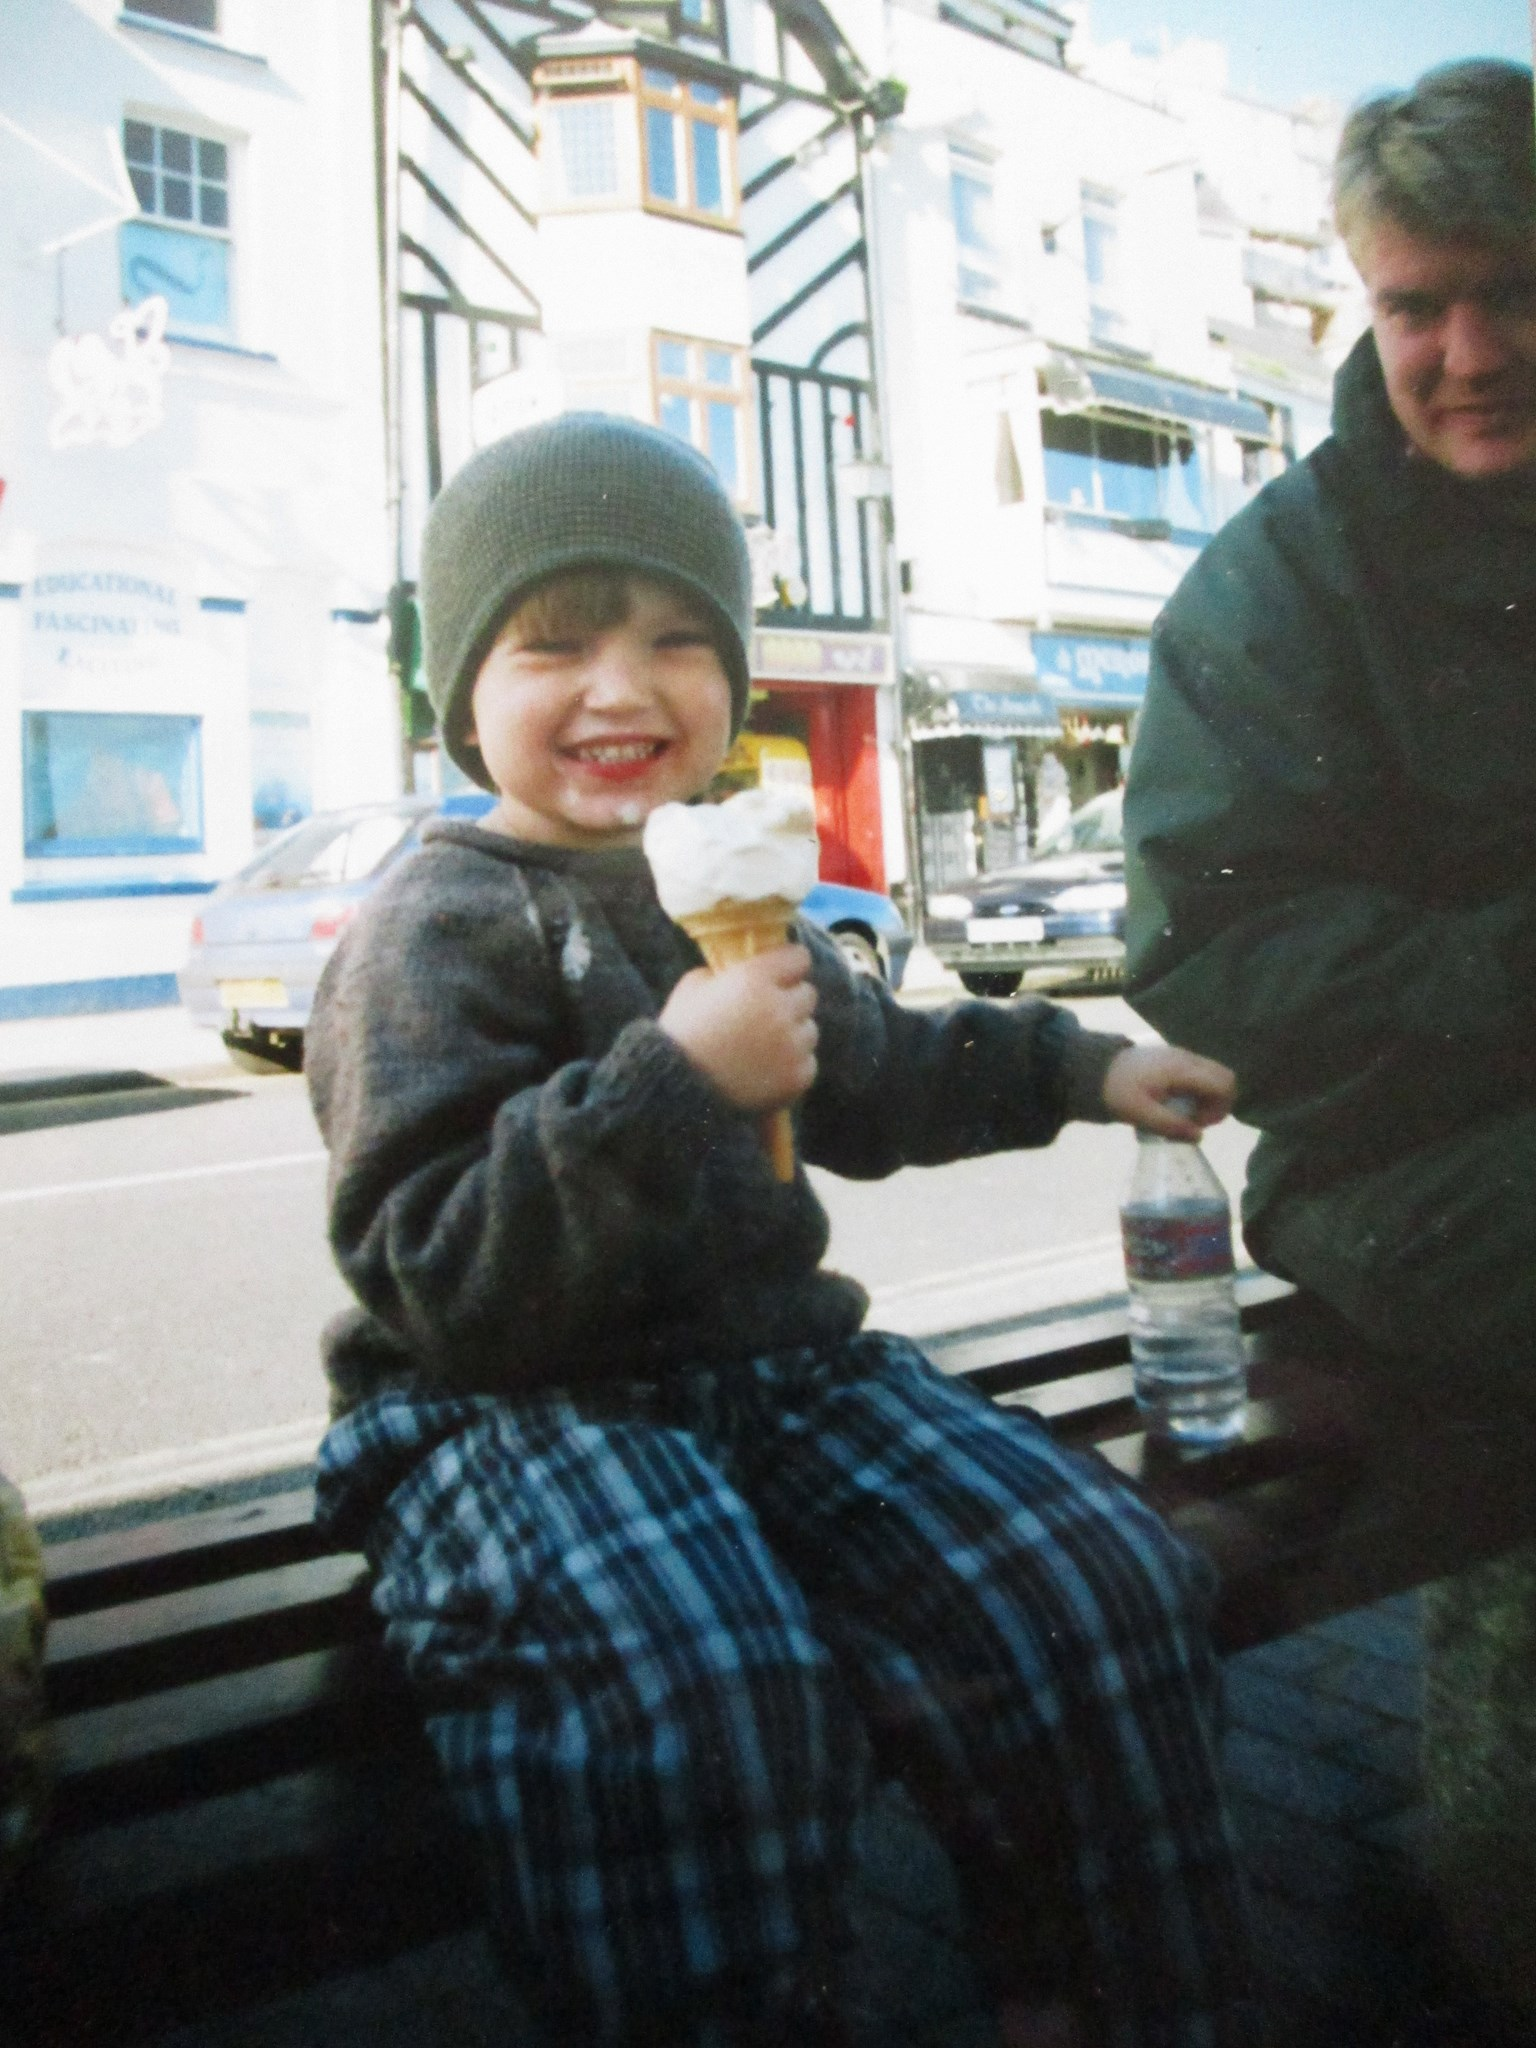 Enjoying an ice cream in Brixham. Aged about 5